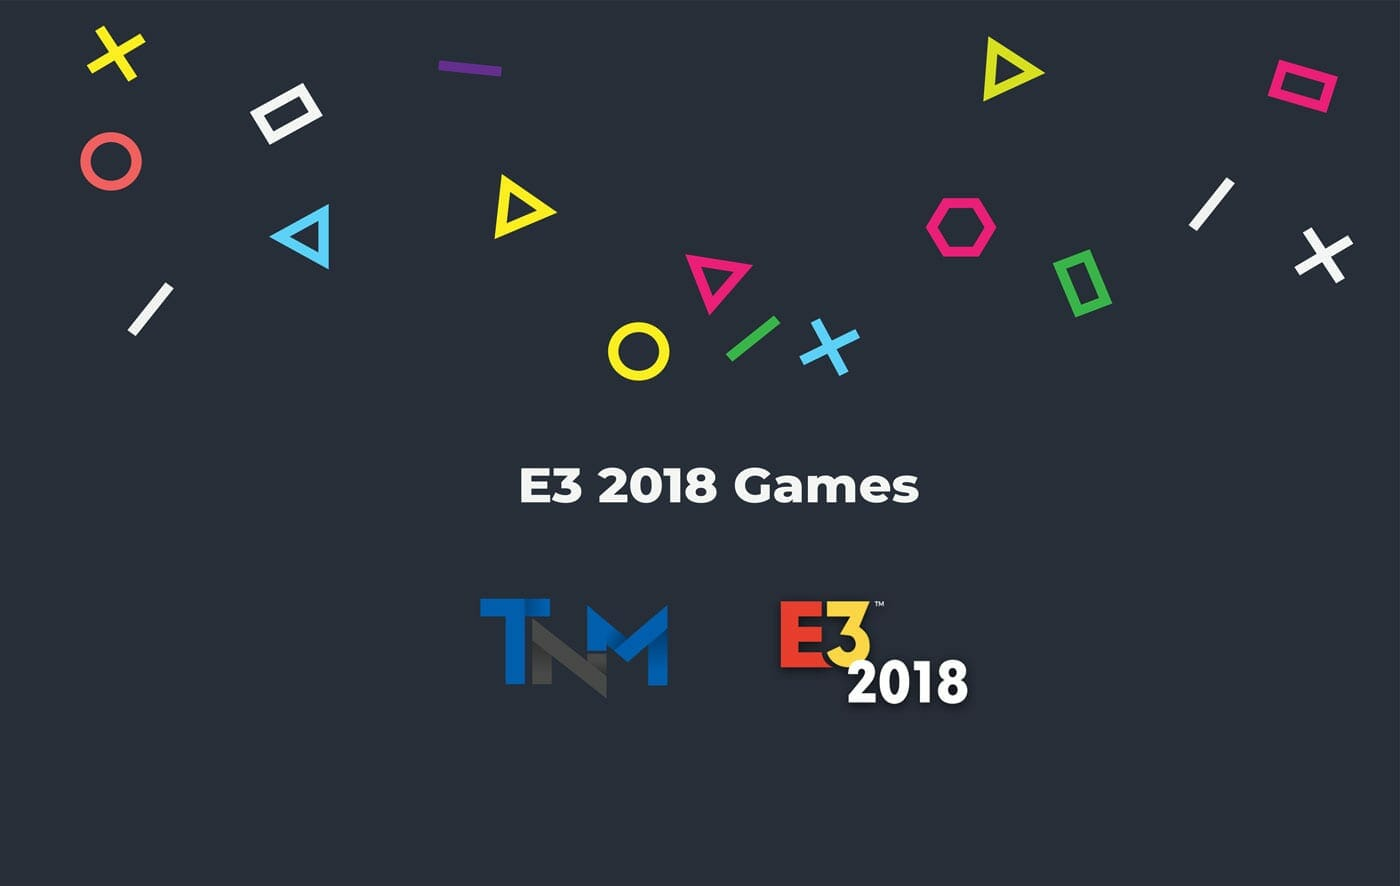 TheNerdMag E3 2018 Coverage